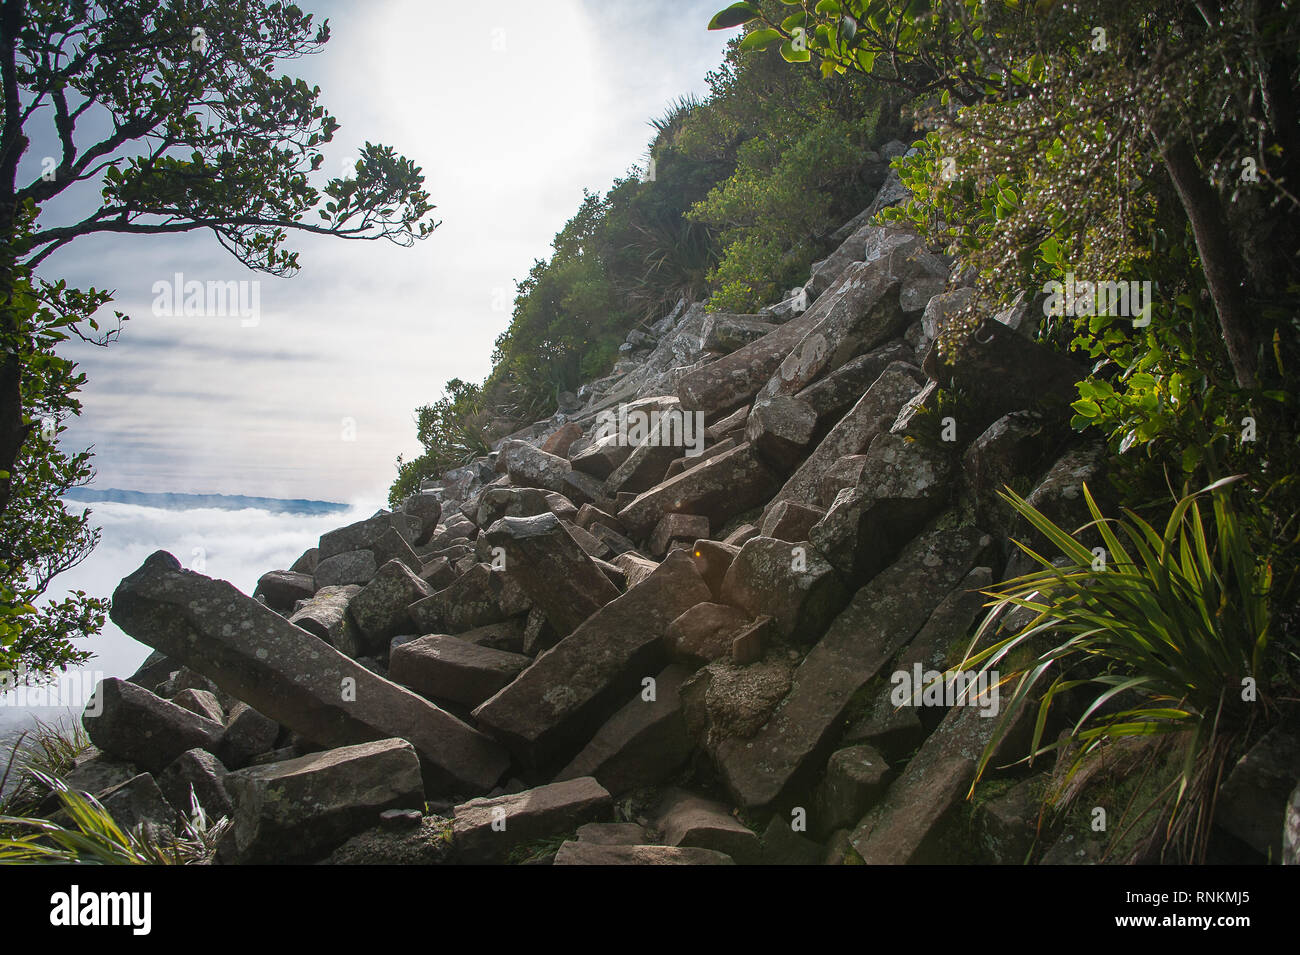 The Organ Pipes, unique basalt columns Mt Cargill, Dunedin, New Zealand. Outcrop and pile of broken pillars, caused by earthquakes and weathering. - Stock Image